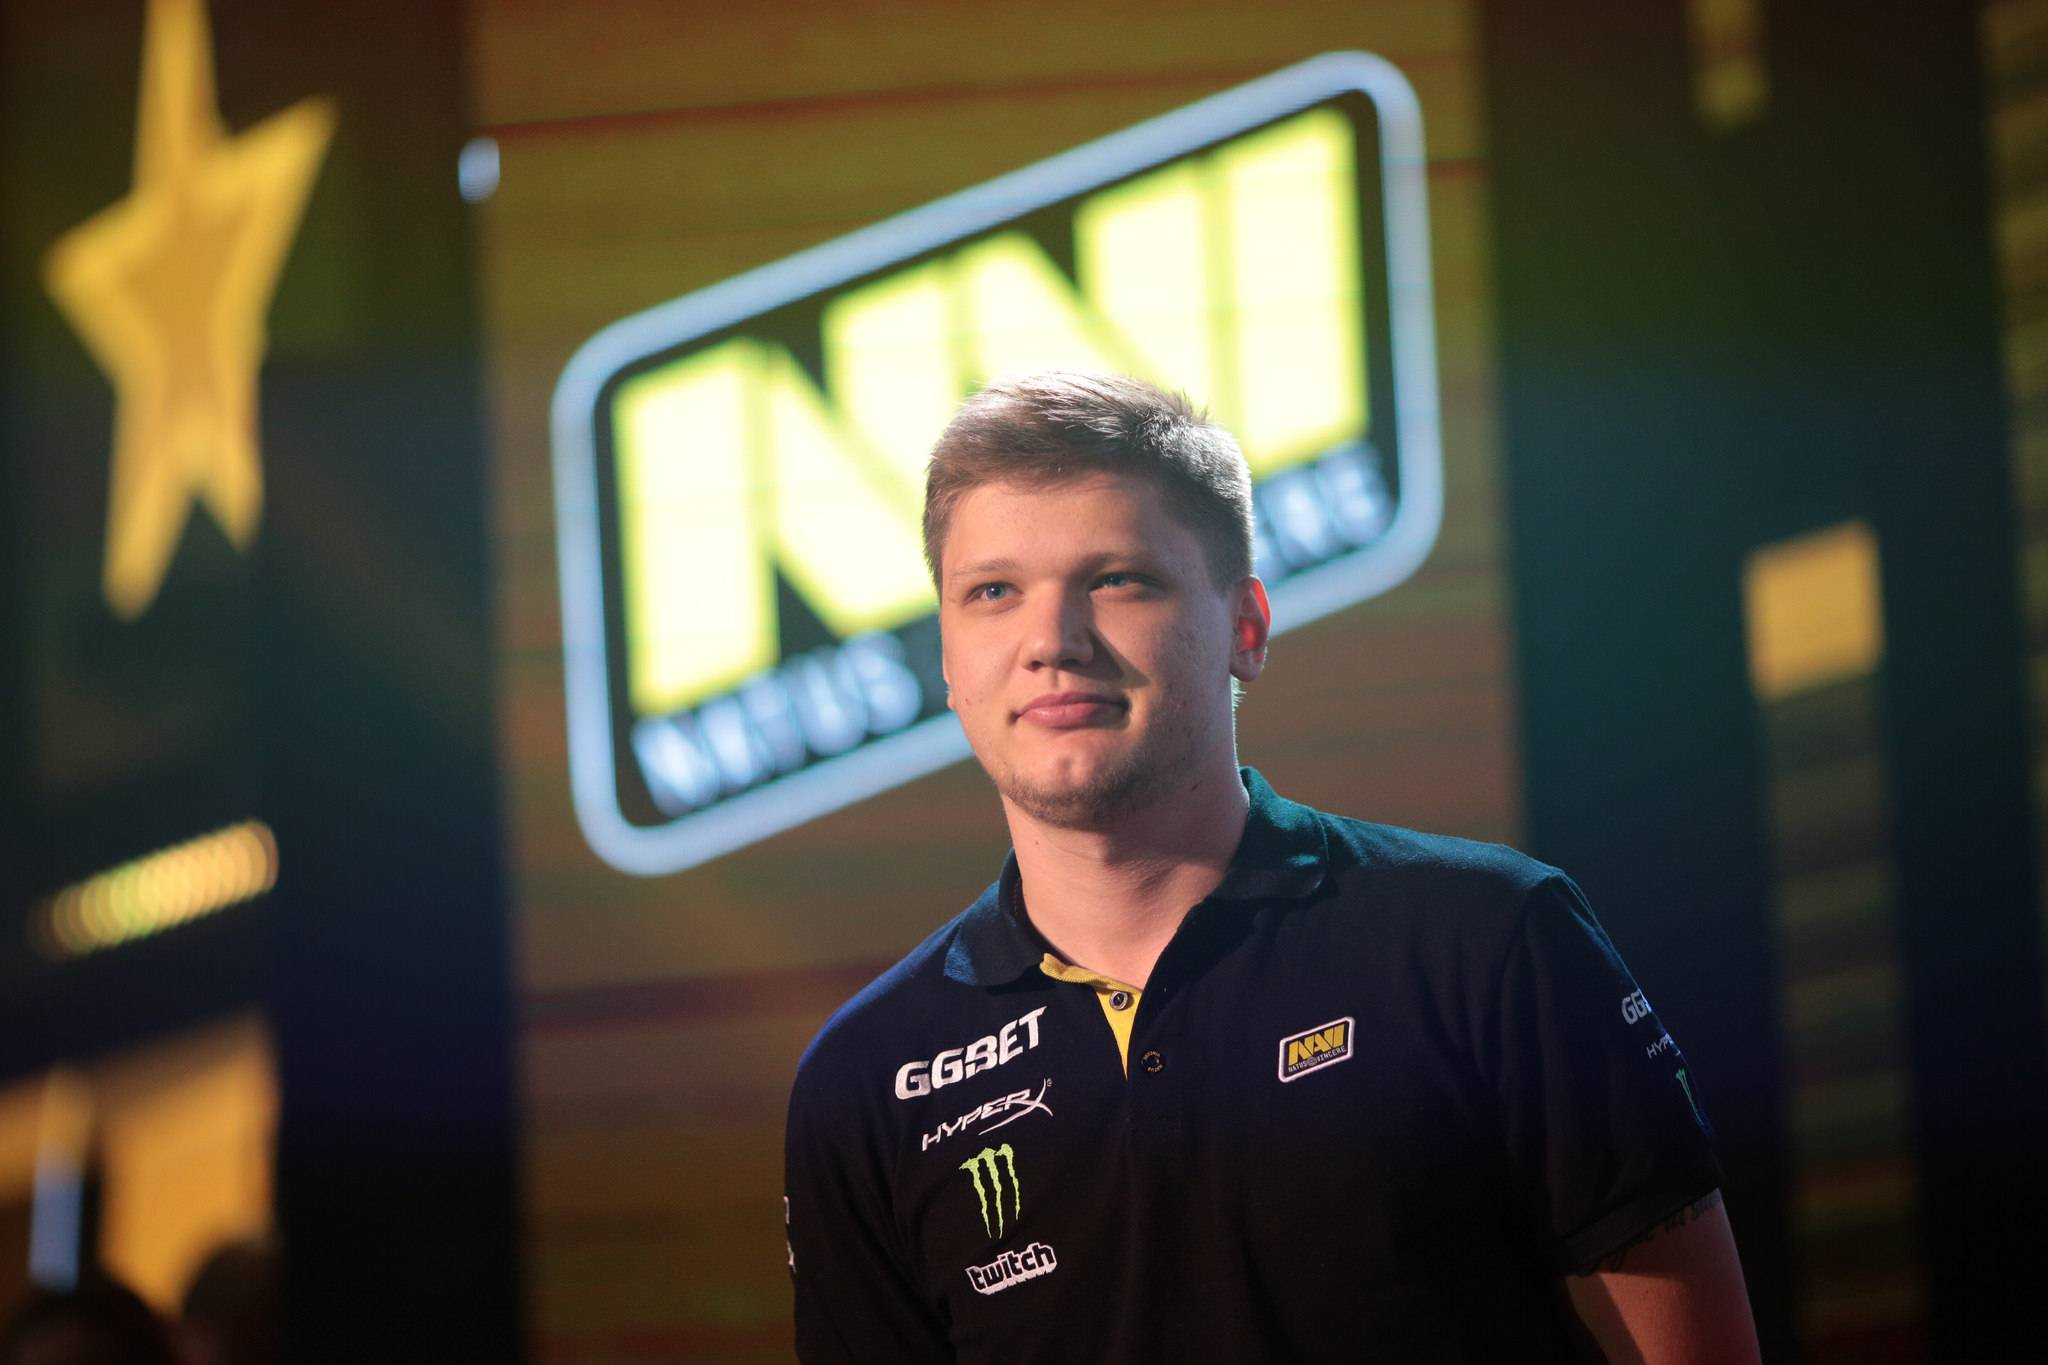 s1mple fpl awards 2020